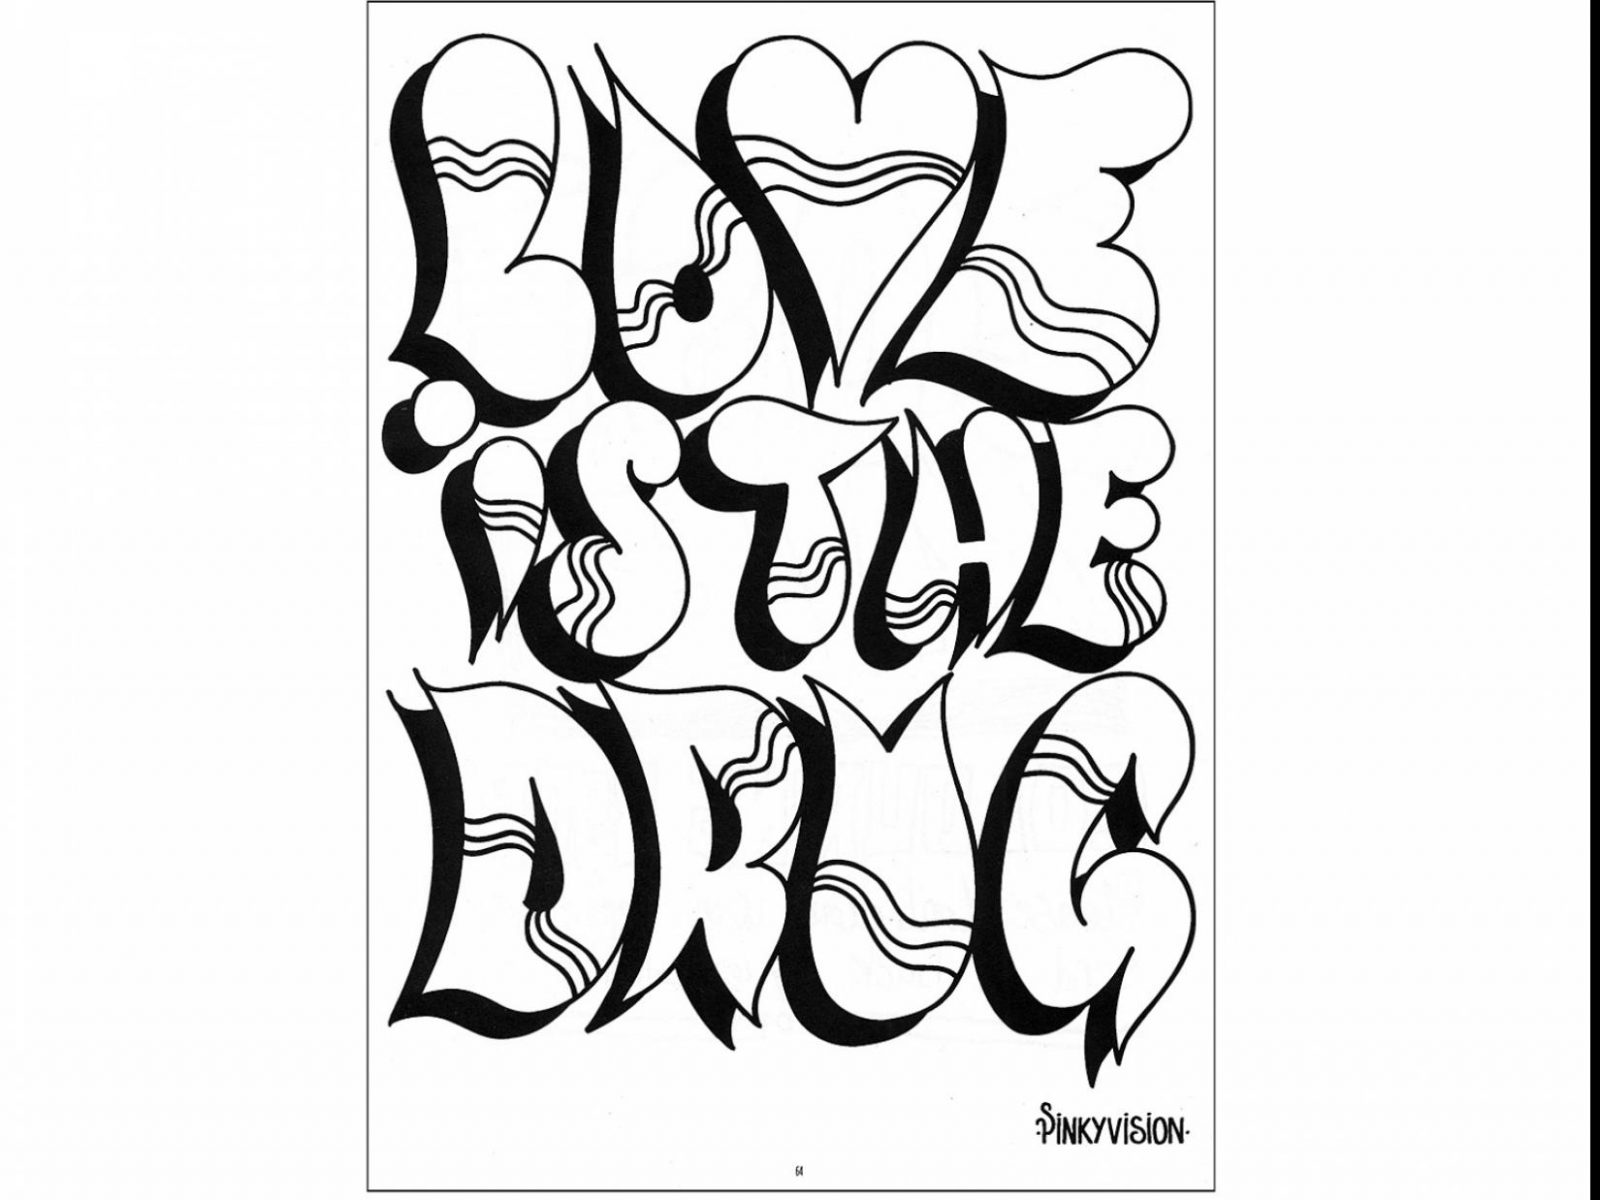 free personalized name coloring pages personalized name coloring pages at getcoloringscom pages free personalized coloring name